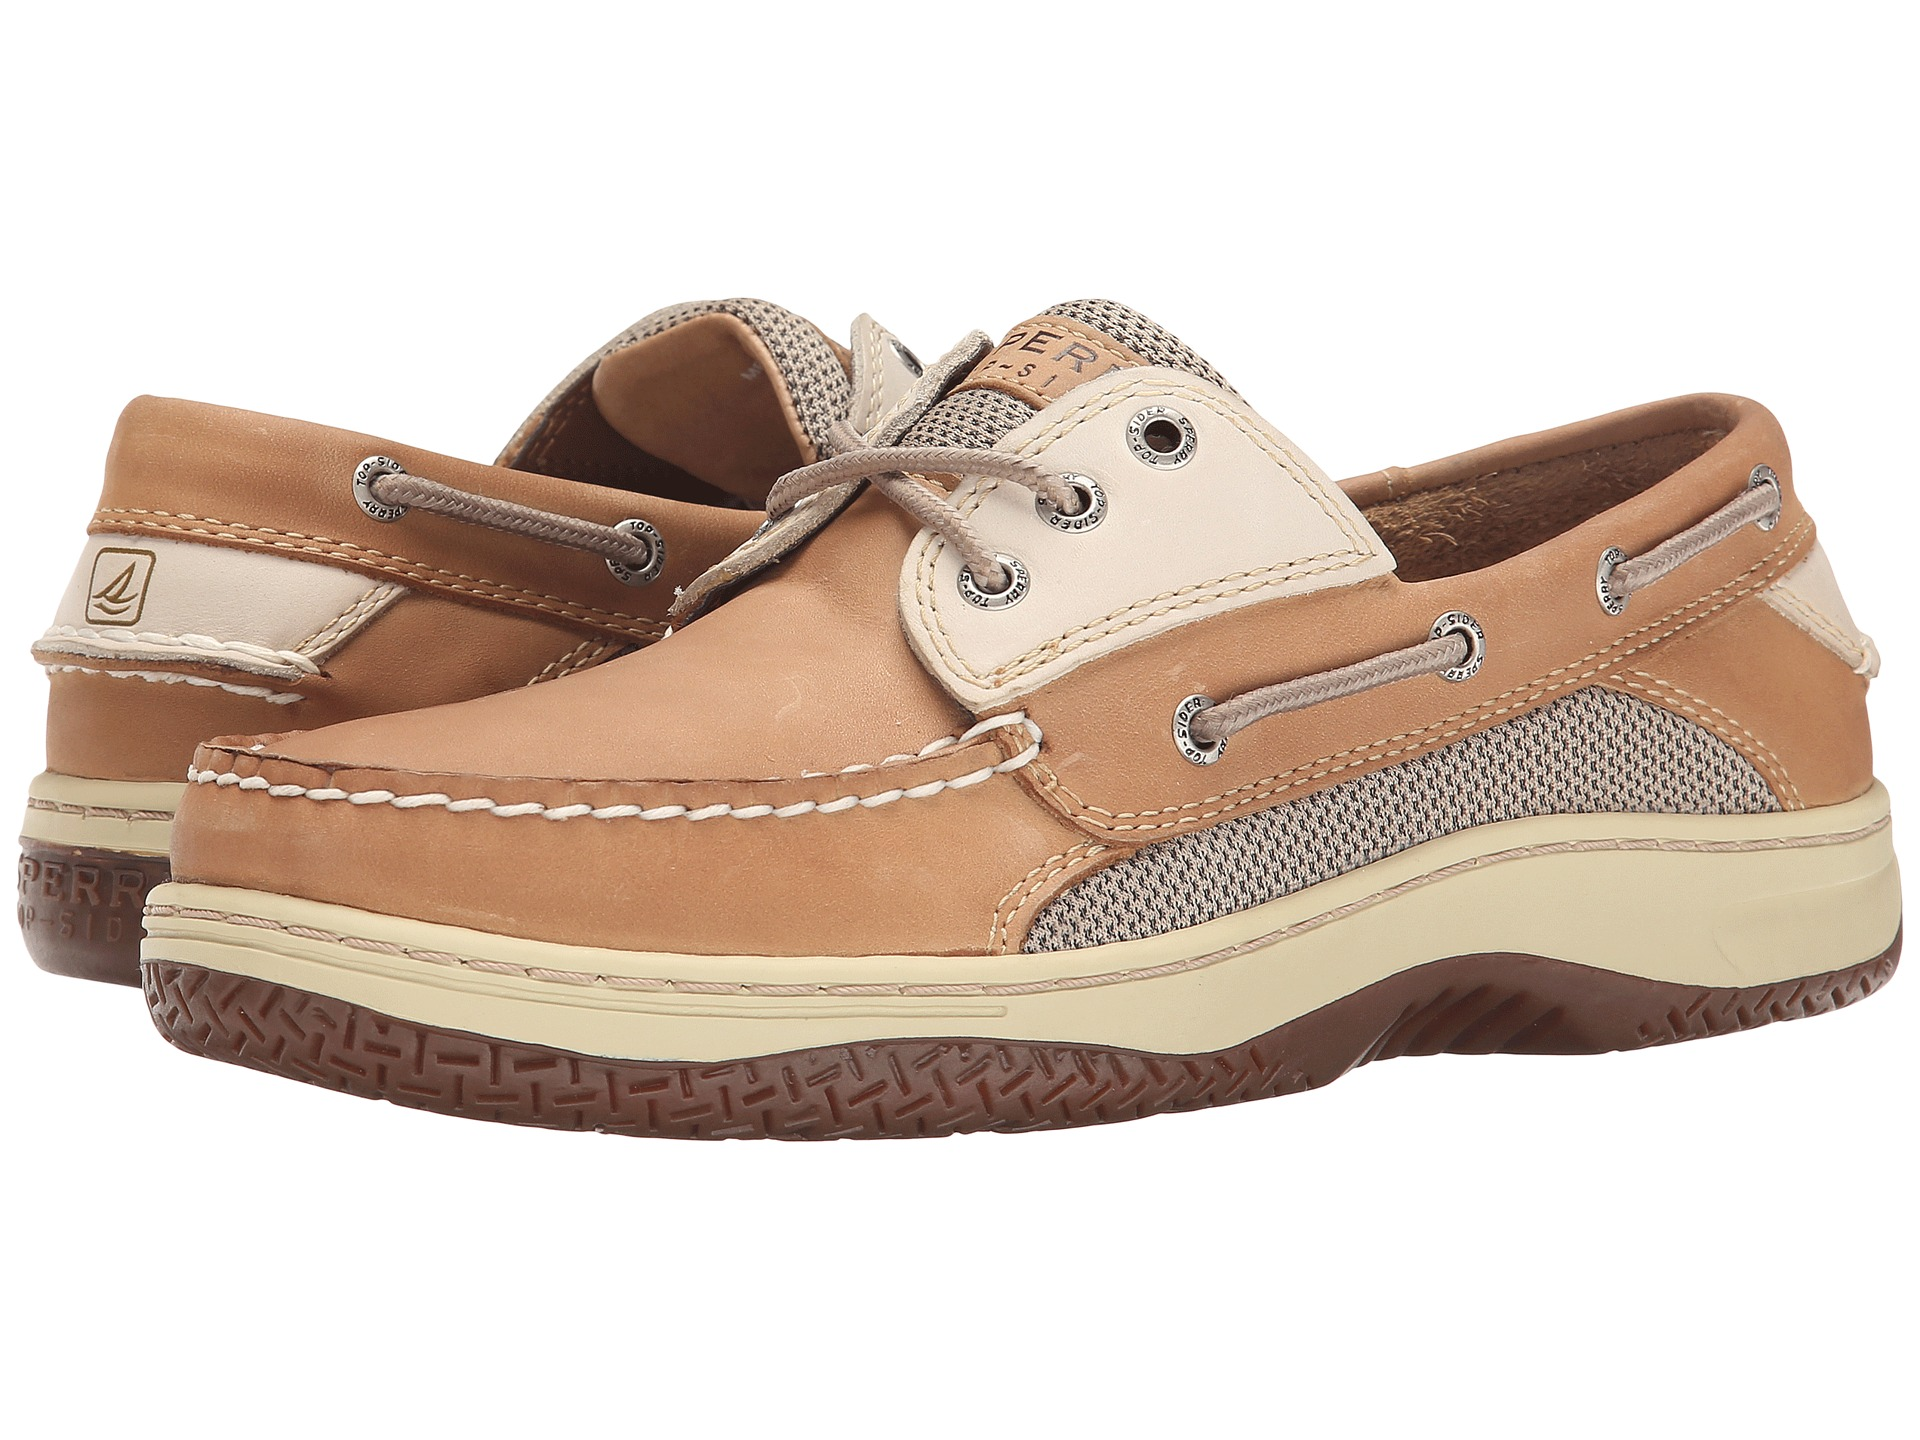 sperry top sider billfish 3 eye boat shoe